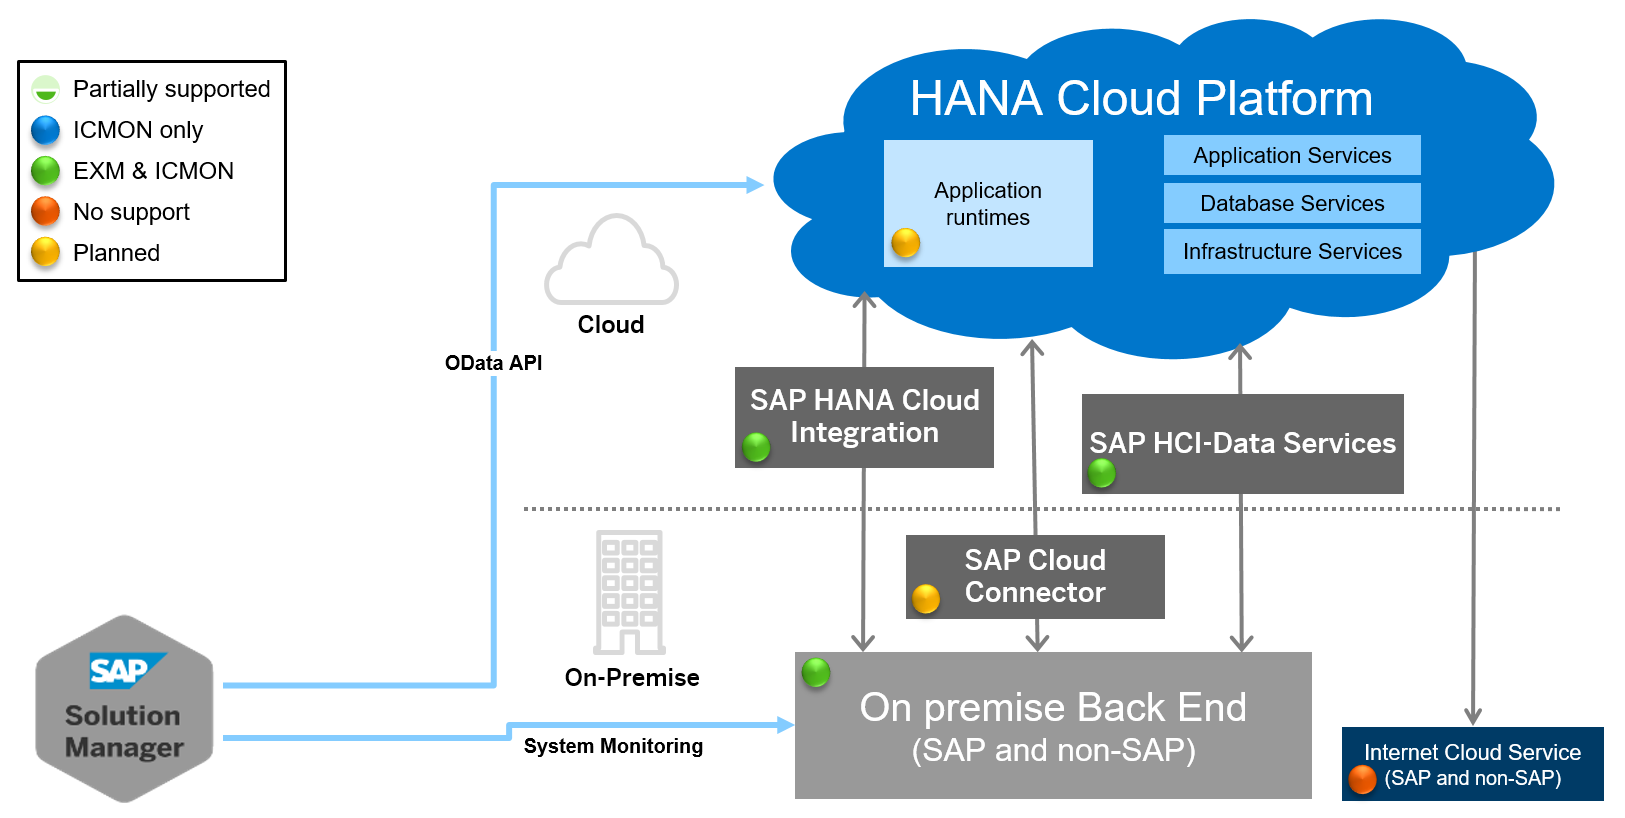 sap cloud operations - supported use cases - technical operations